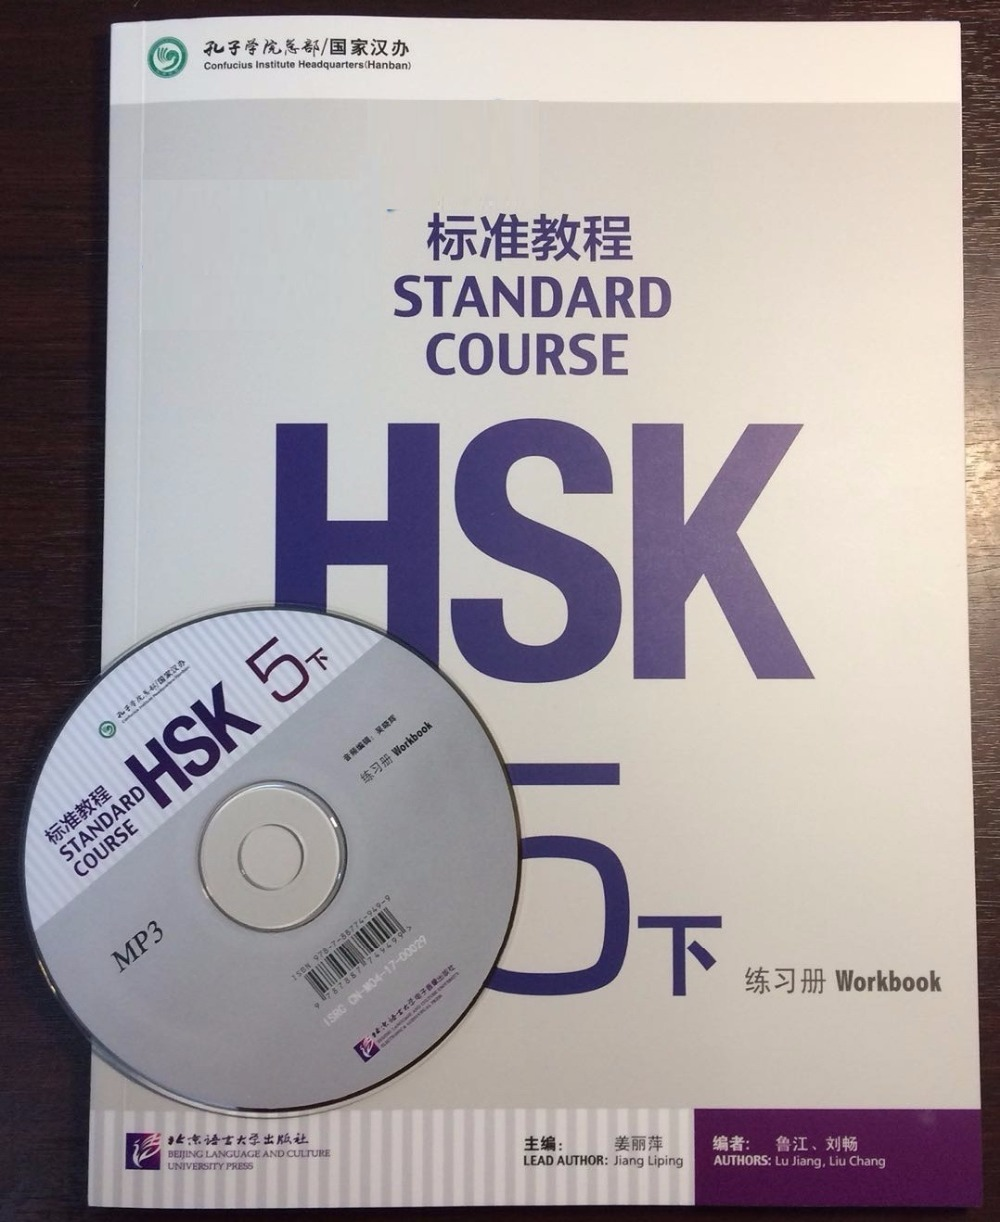 Chinese English exercise book HSK students workbook :Standard Course HSK 5B (with CD)Chinese English exercise book HSK students workbook :Standard Course HSK 5B (with CD)